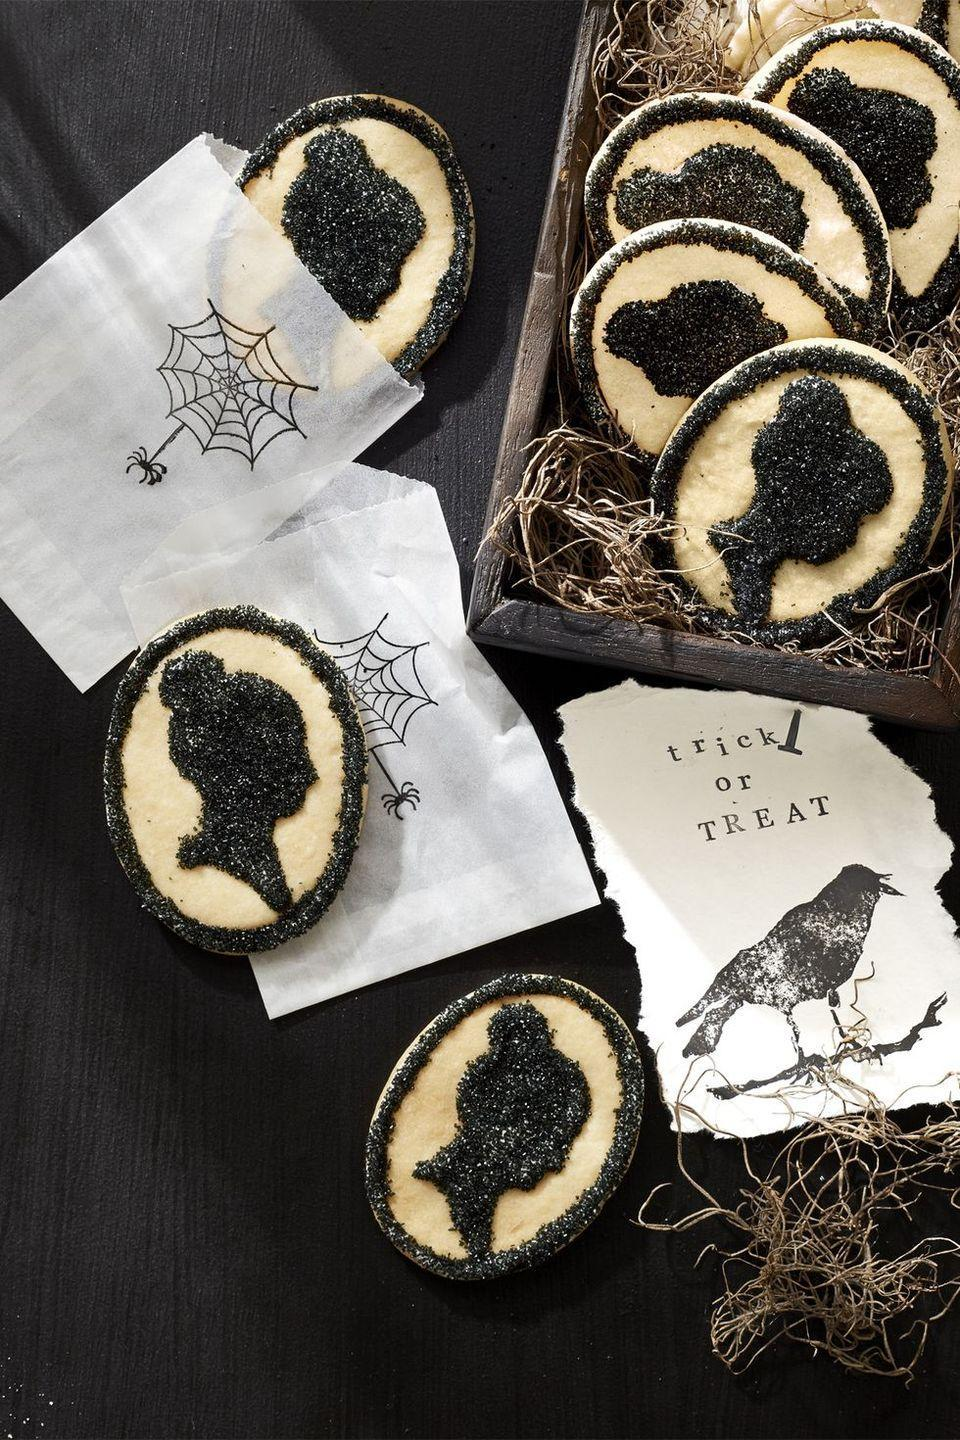 """<p>Jazz up some simple sugar cookies with a classic silhouette-inspired design. </p><p><strong><em>Get the recipe at <a href=""""https://www.countryliving.com/food-drinks/g2651/halloween-cookies/?slide=4"""" rel=""""nofollow noopener"""" target=""""_blank"""" data-ylk=""""slk:Country Living"""" class=""""link rapid-noclick-resp"""">Country Living</a>.</em></strong><br></p>"""